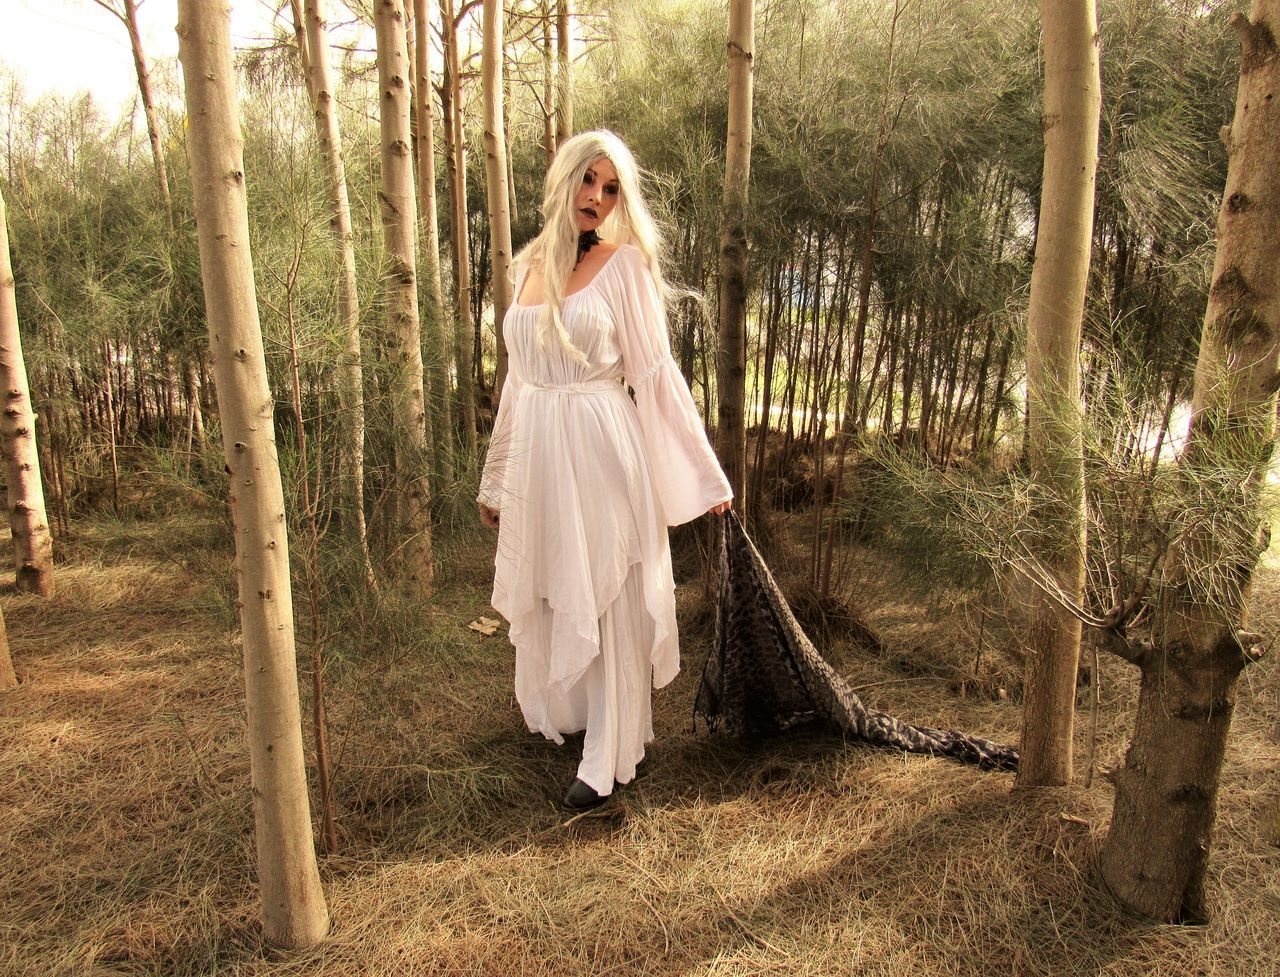 Angela Caven Adult Adults Only Blond Hair Bride Day Full Length Nature One Person One Woman Only Only Women Outdoors People Stage Make-up Tree Walking In Forest Wedding Dress